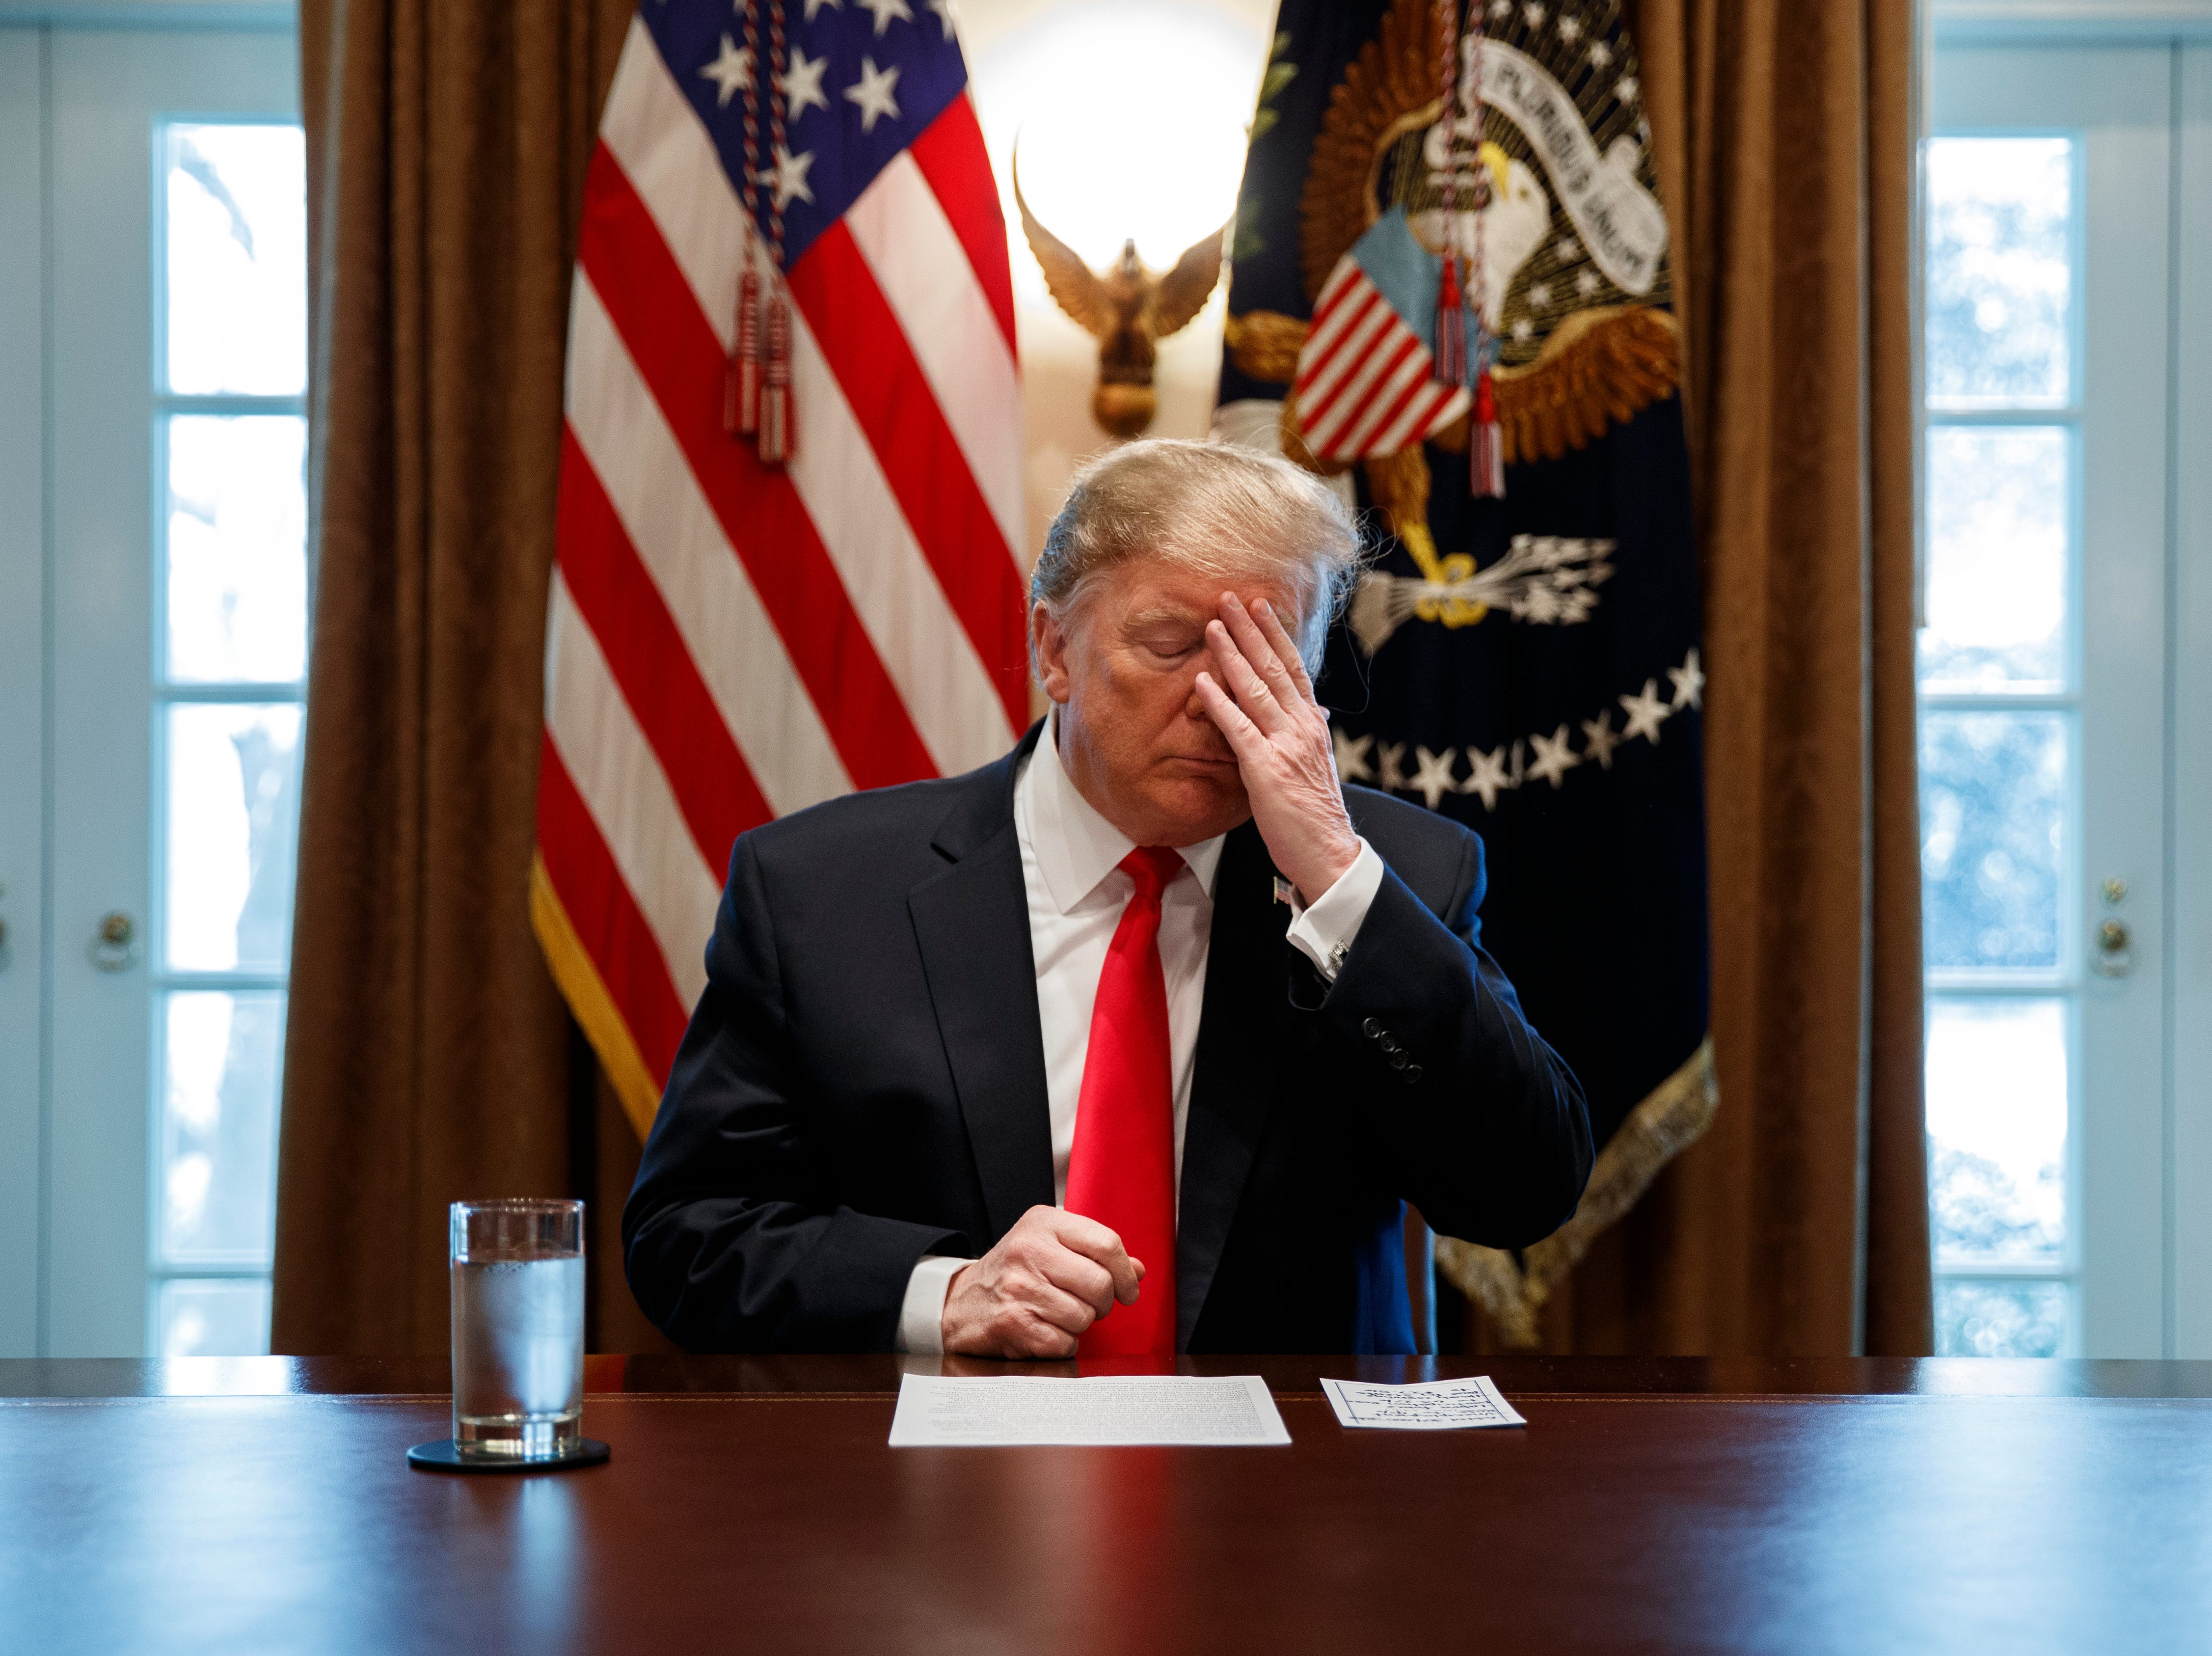 President Donald Trump adjusts his eyebrows before speaking during an event on human trafficking in the Cabinet Room of the White House, Friday, Feb. 1, 2019, in Washington.